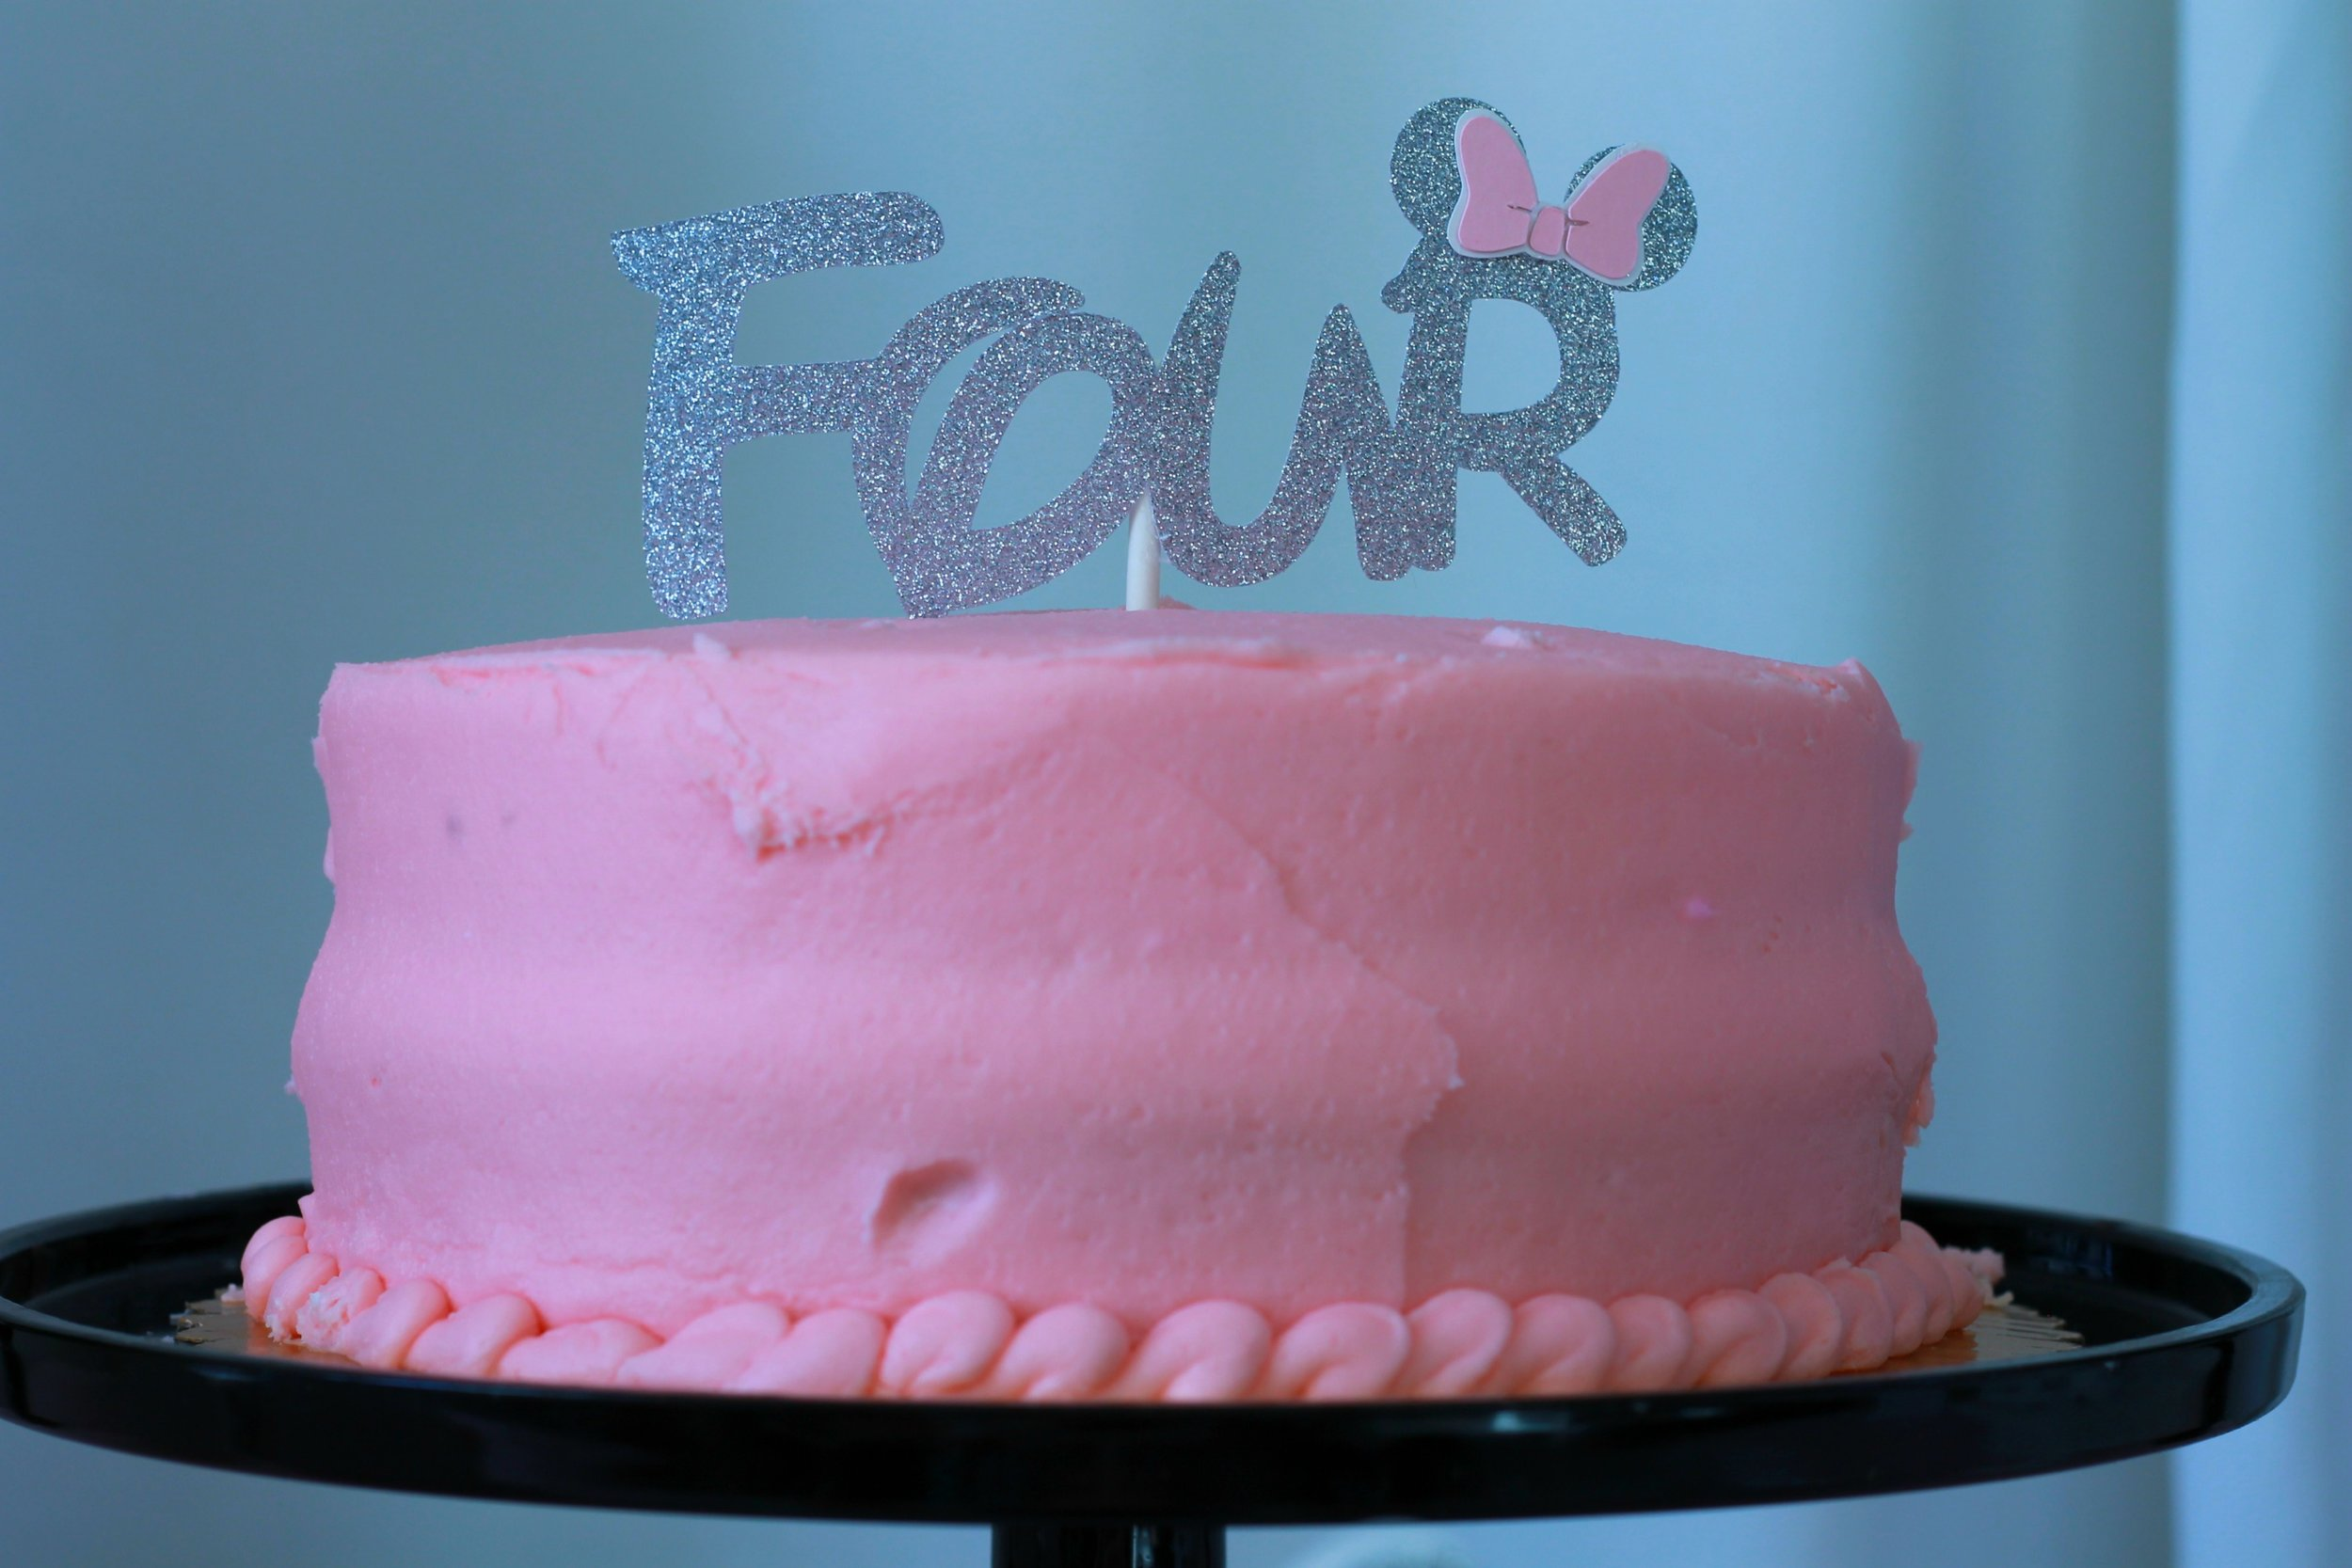 Age Cake Topper - Your cake topper can be customized to any age needed.